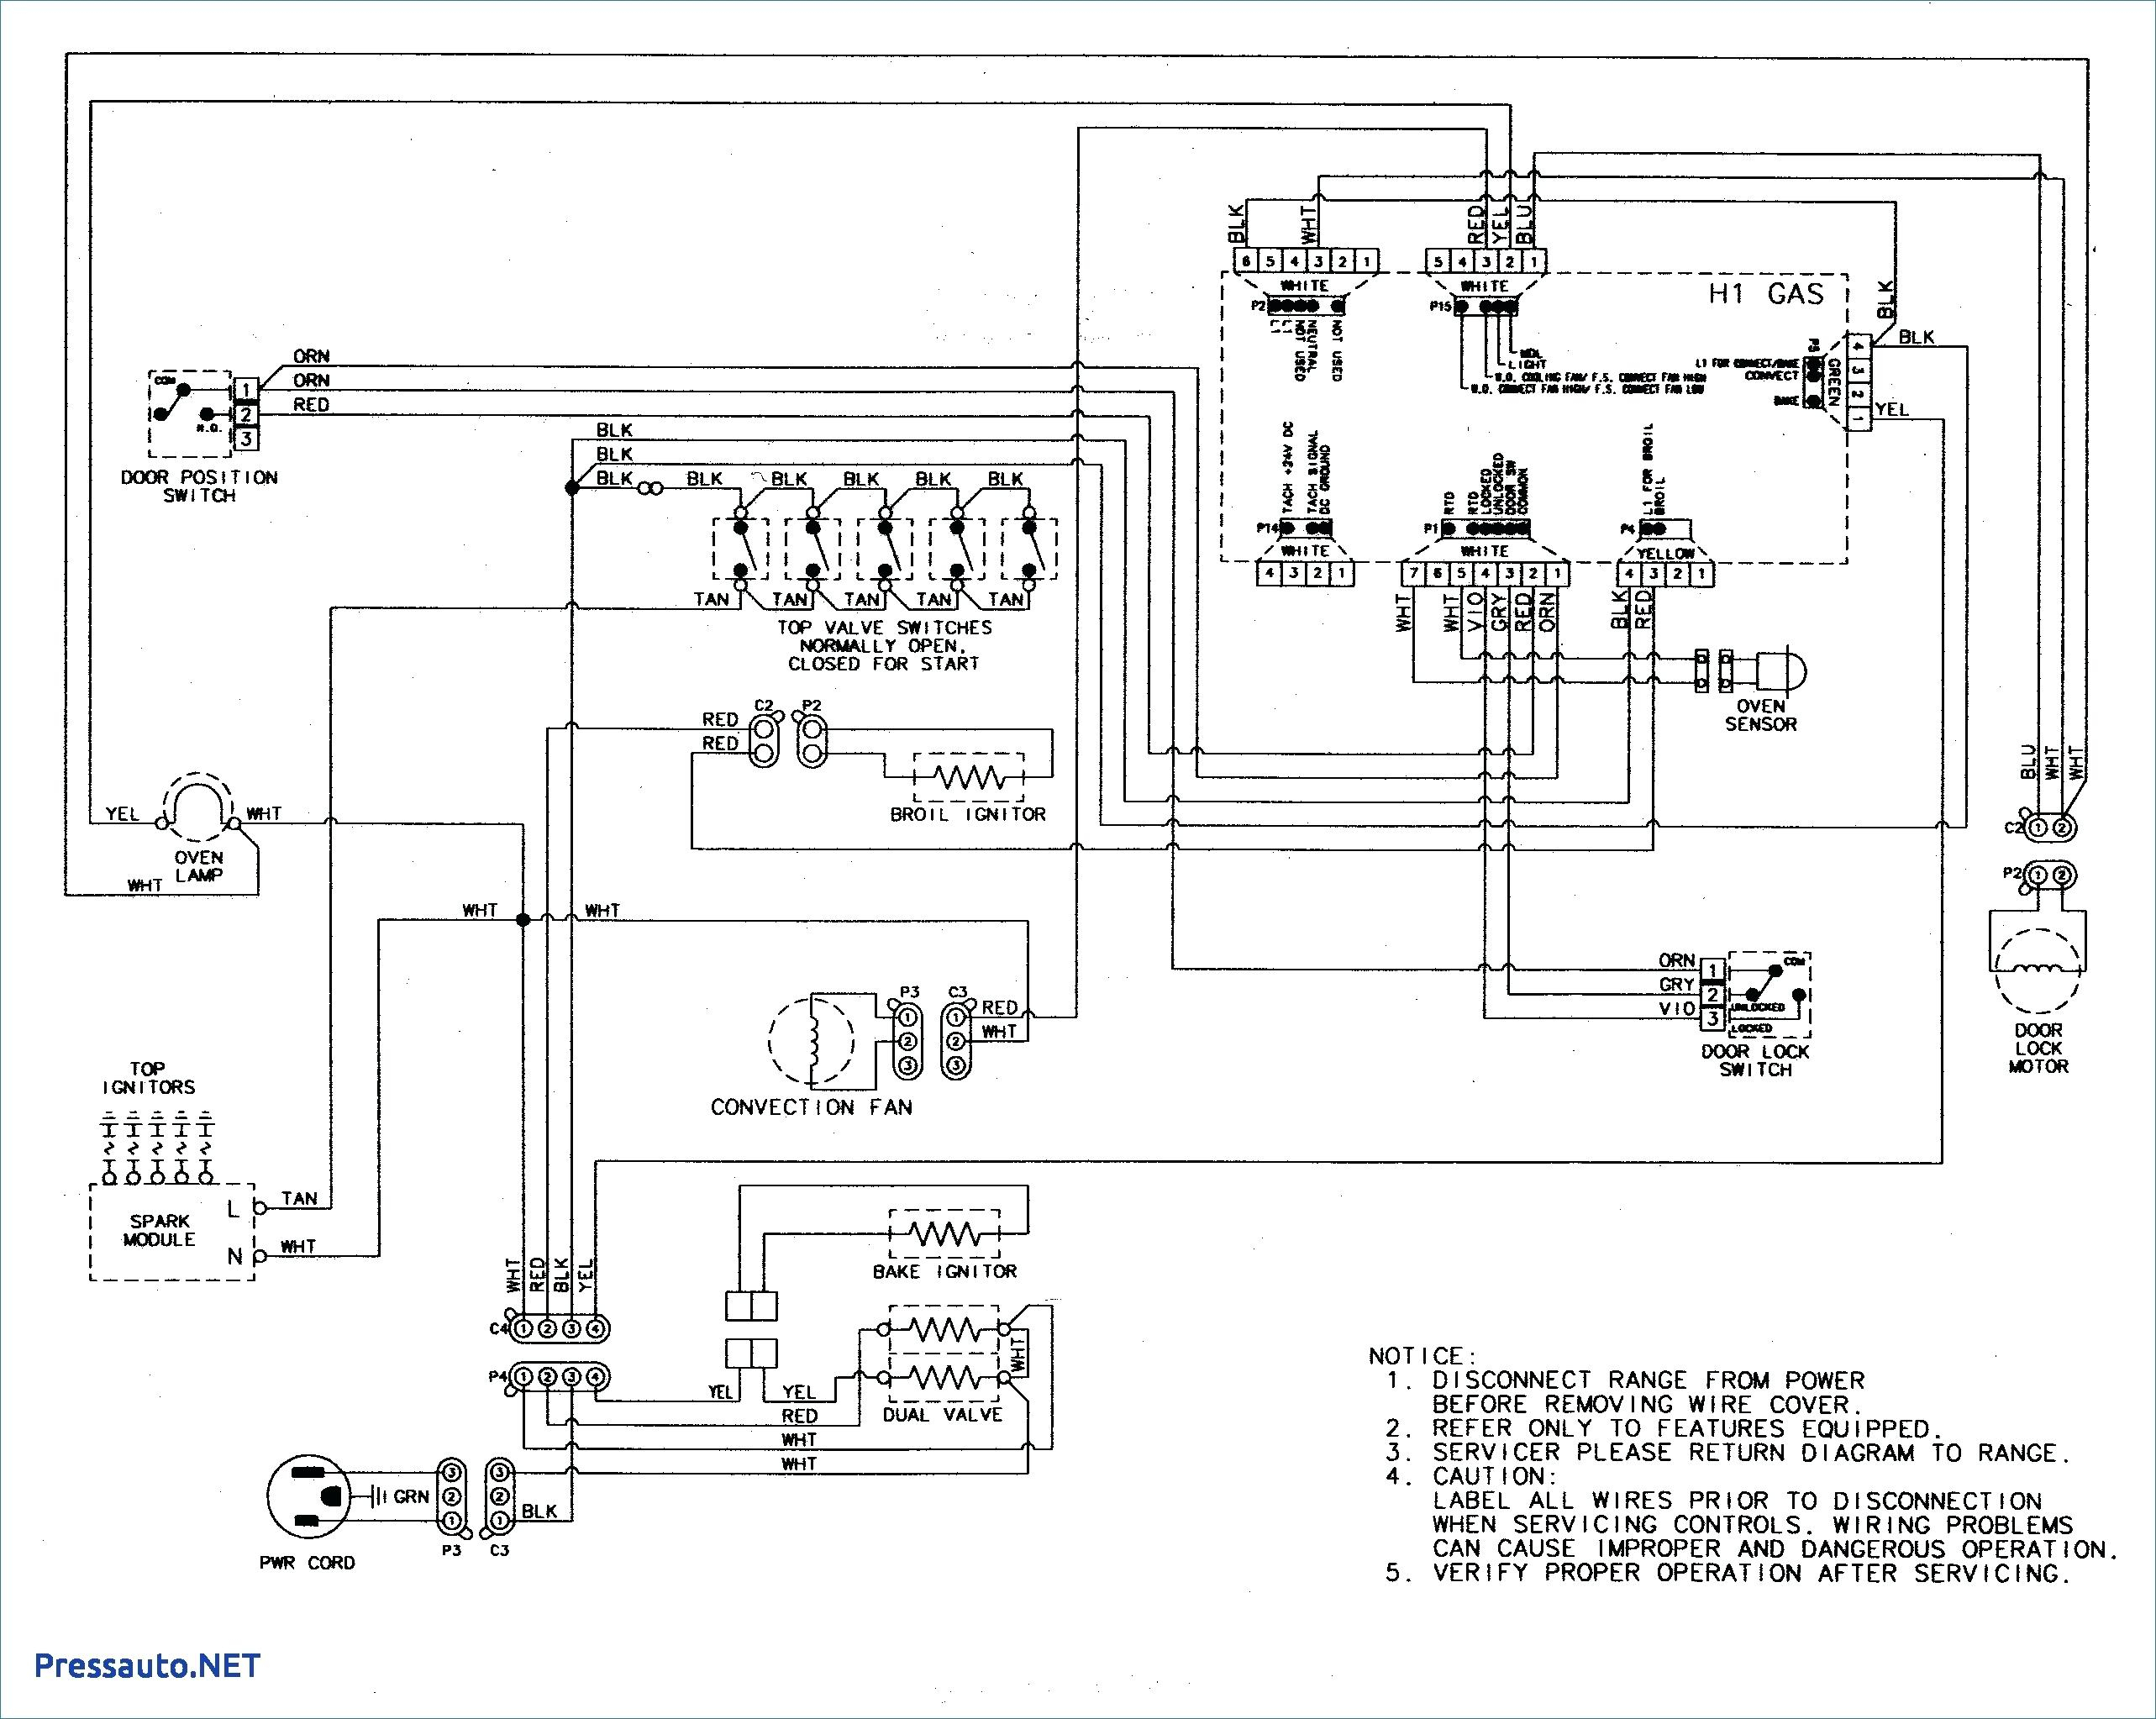 dryer wiring schematic get free image about wiring diagram wire rh pandahd co